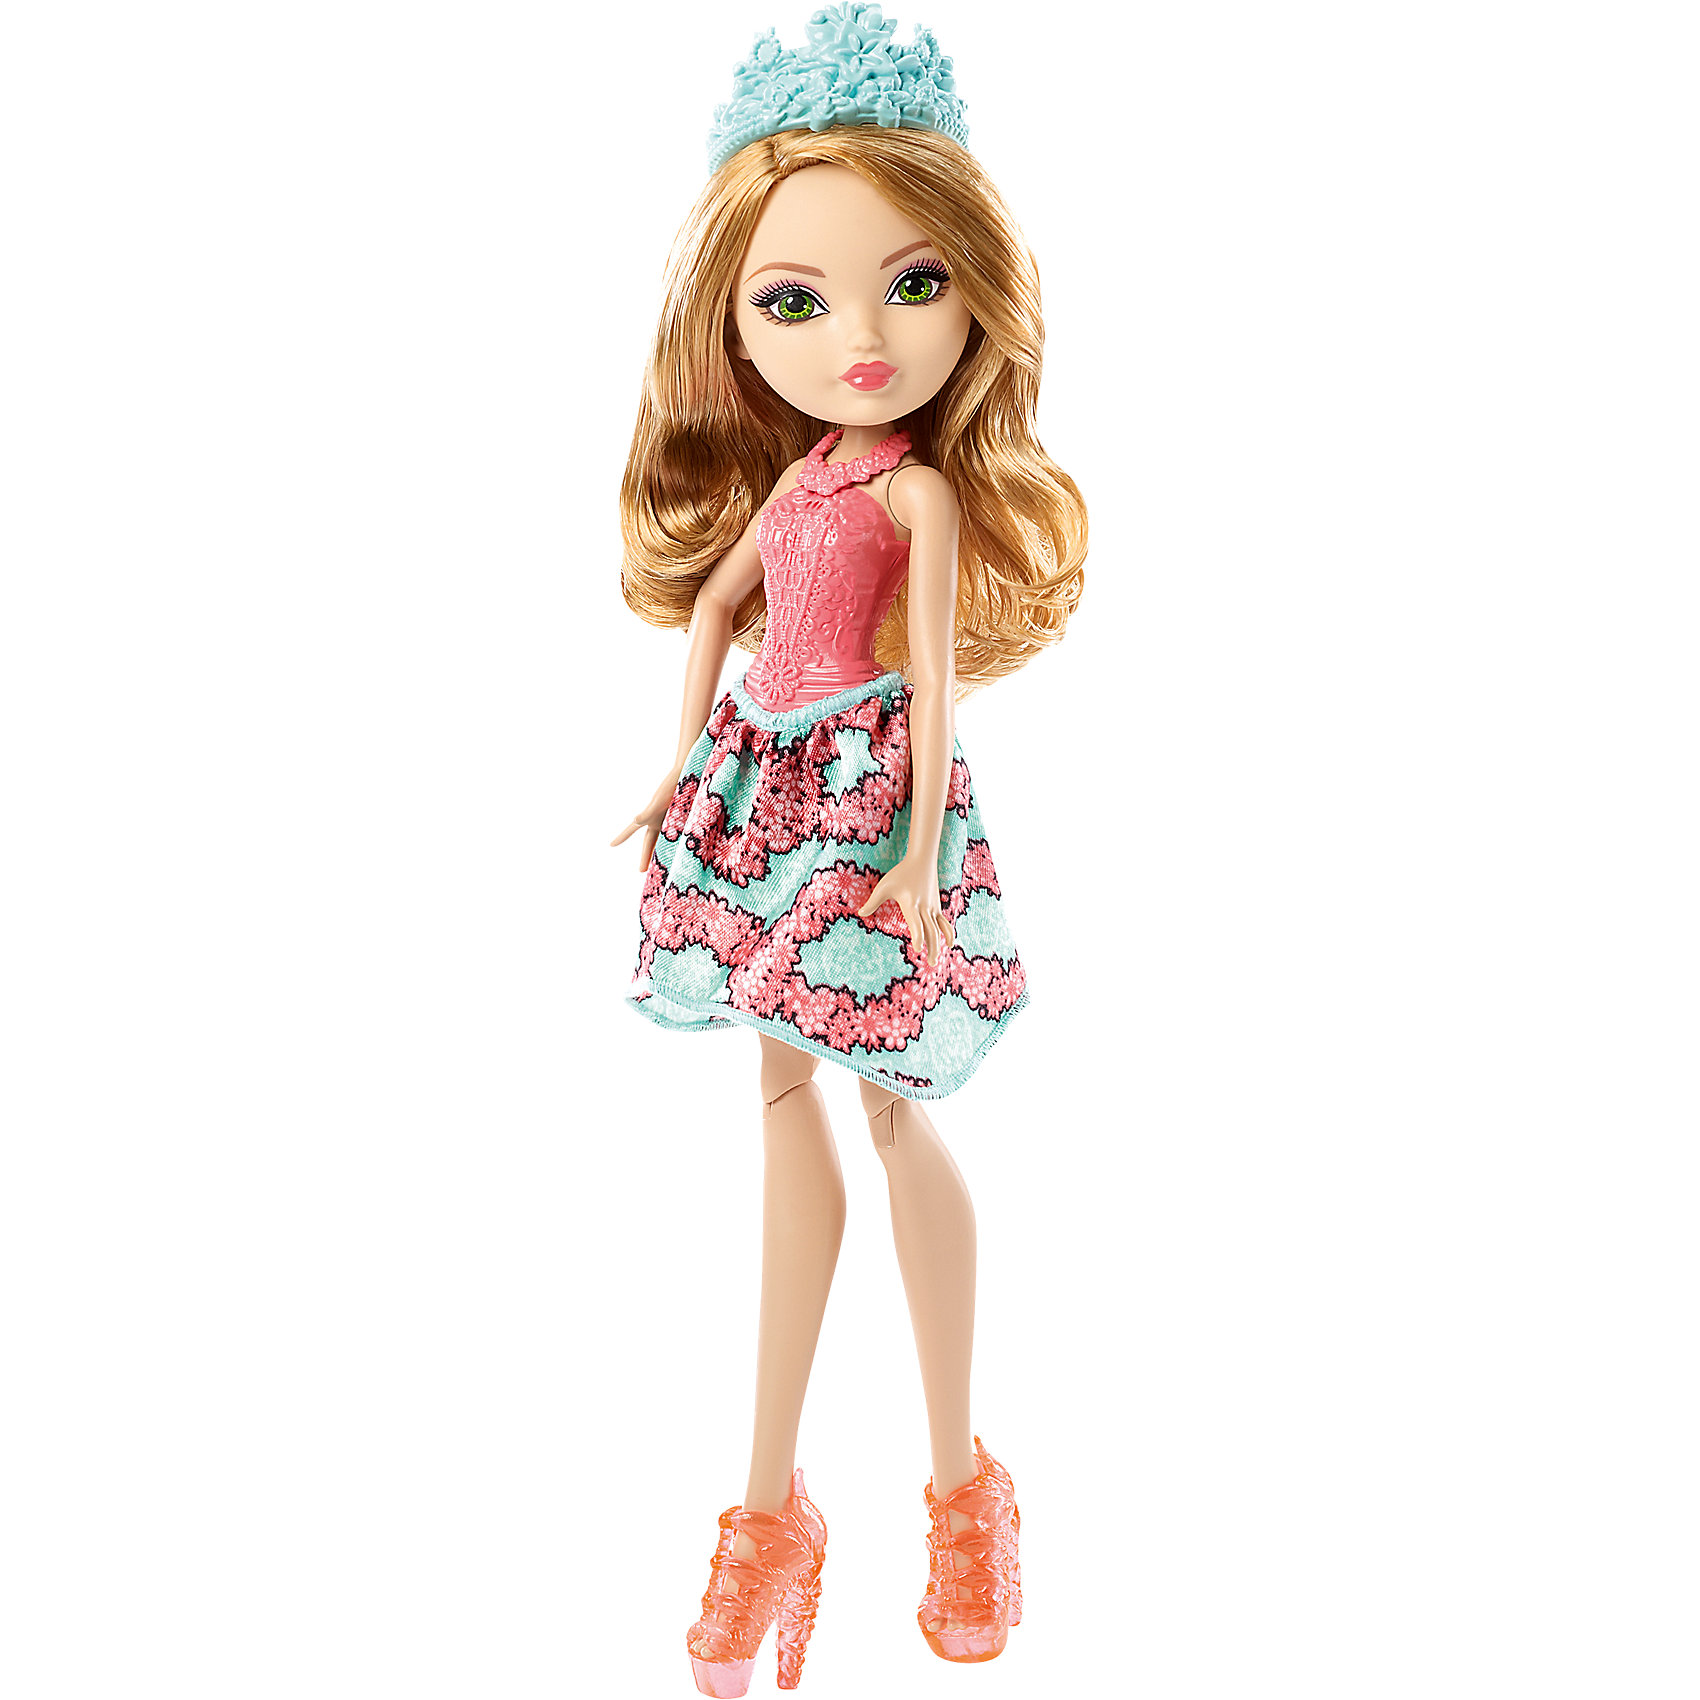 Mattel Кукла Эшлин Элла,  Ever After High mattel ever after high dvh79 куклы лучницы эшлин элла